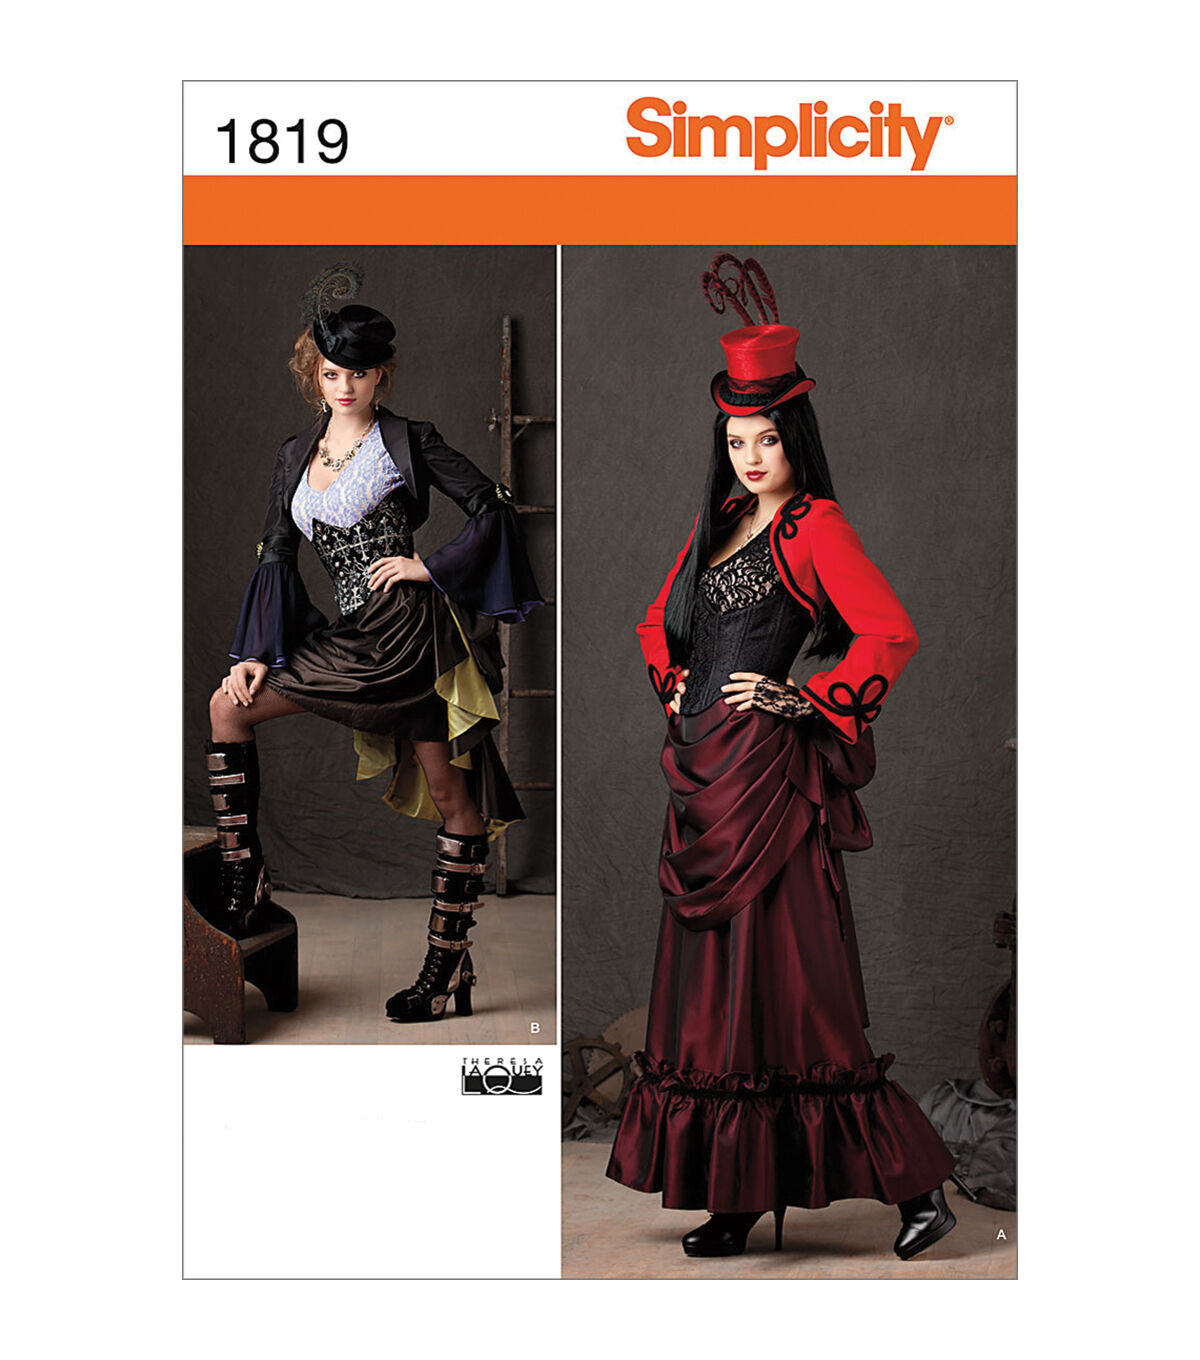 Steampunk Sewing Patterns- Dresses, Coats, Plus Sizes, Men's Patterns Simplicity - Patterns 1819 - Misses Steampunk Costume - Sizes 6-8-10-12 - Costumes - At JOANN Fabrics  Crafts $4.49 AT vintagedancer.com